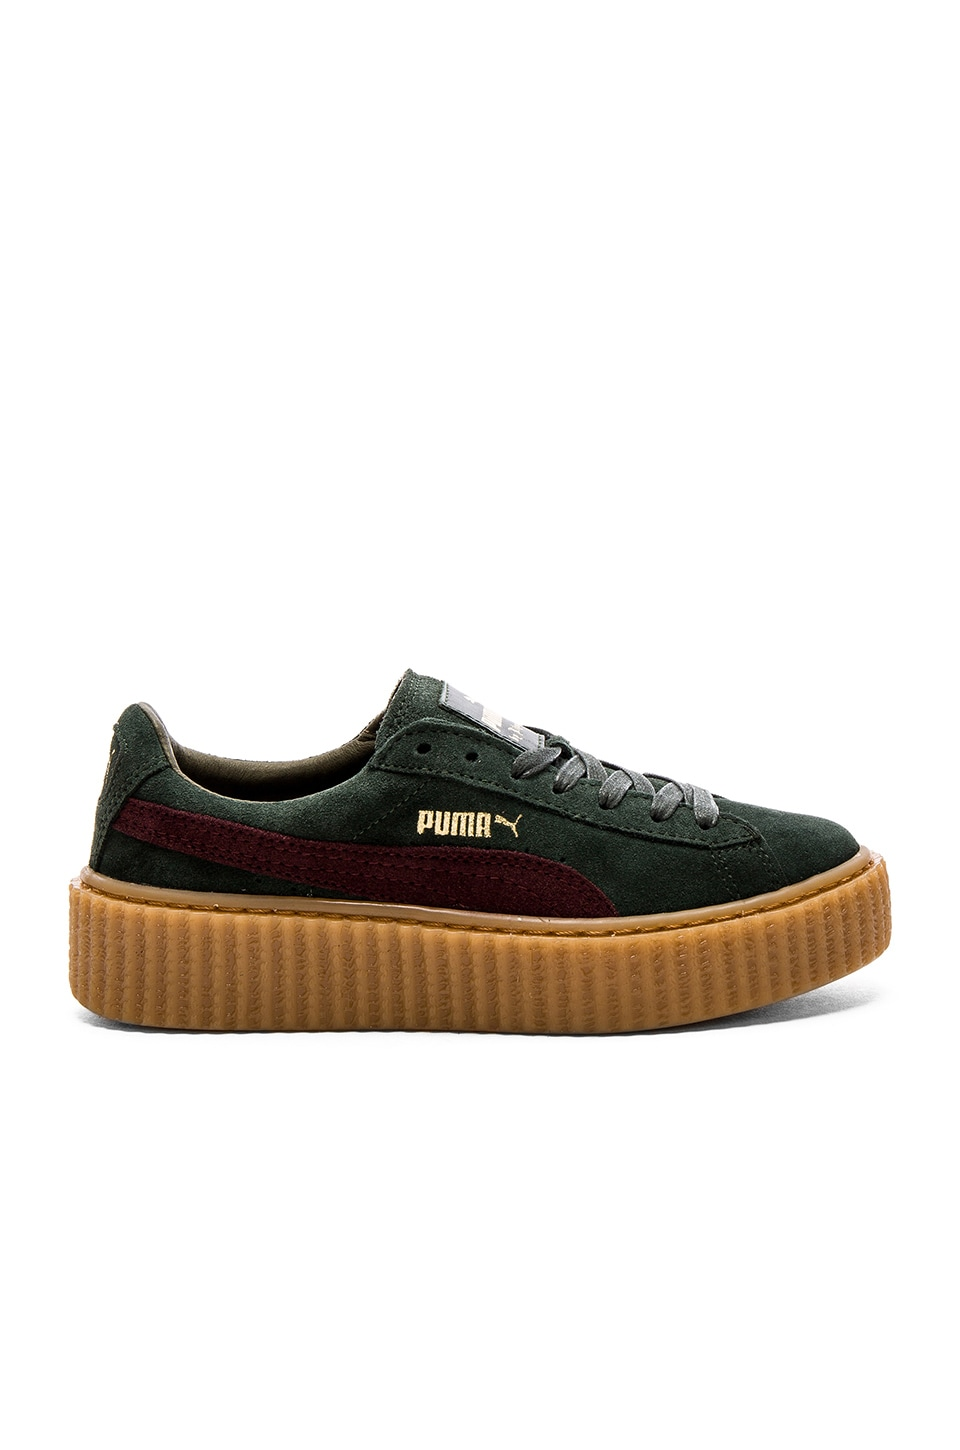 buy online 1fcc9 83831 Puma x Rihanna Creepers Sneaker in Green Bordeaux Gum | REVOLVE